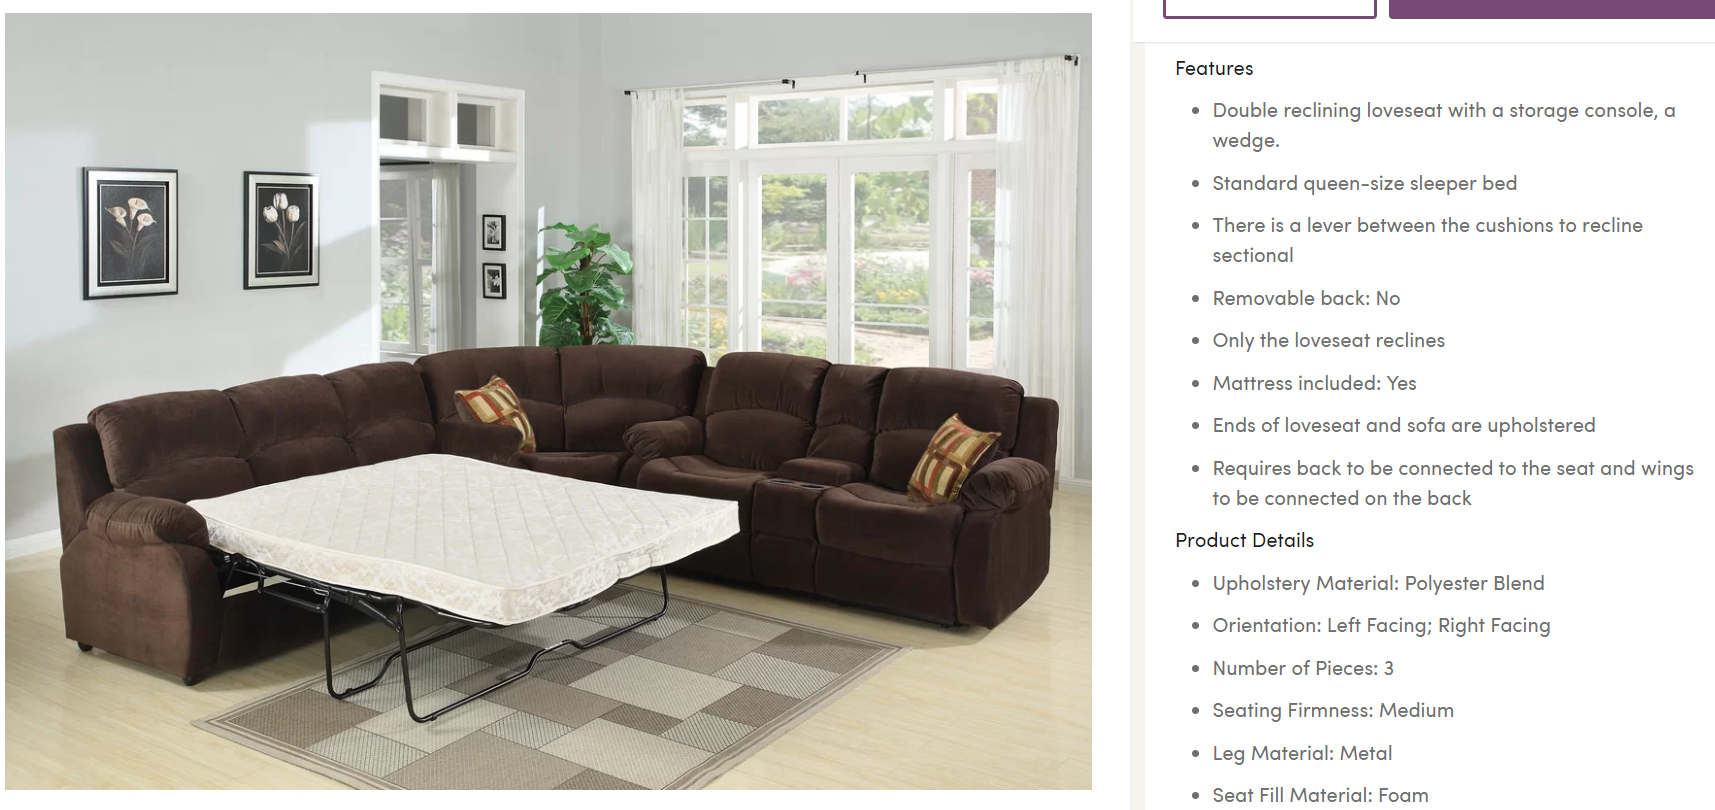 Wayfair provides a very informative shopping experience.